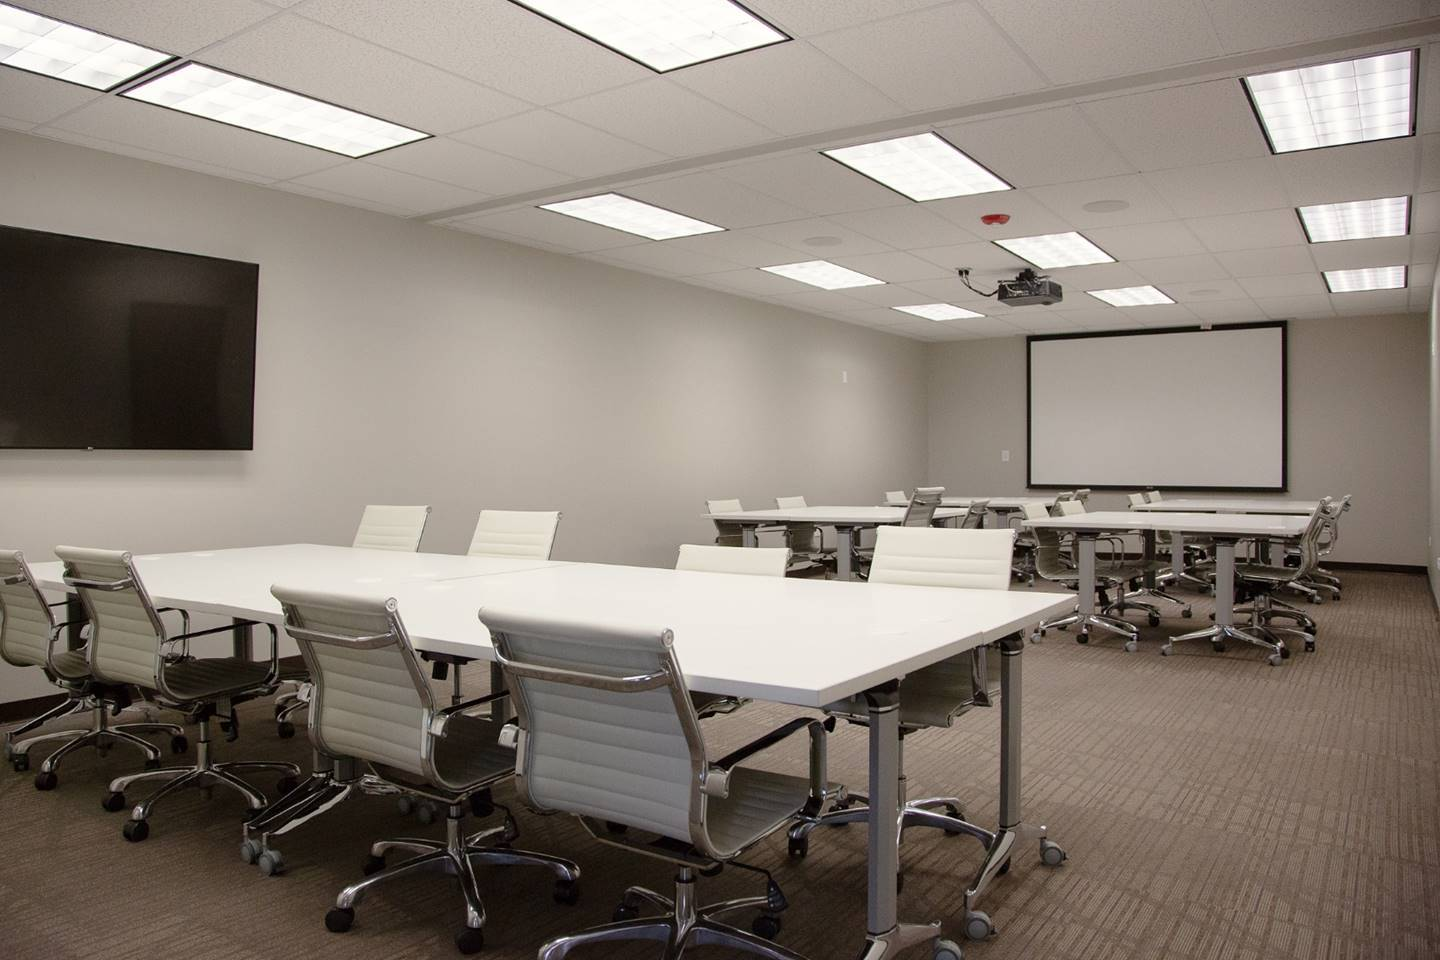 Large meeting room configuration perfect for speaking events